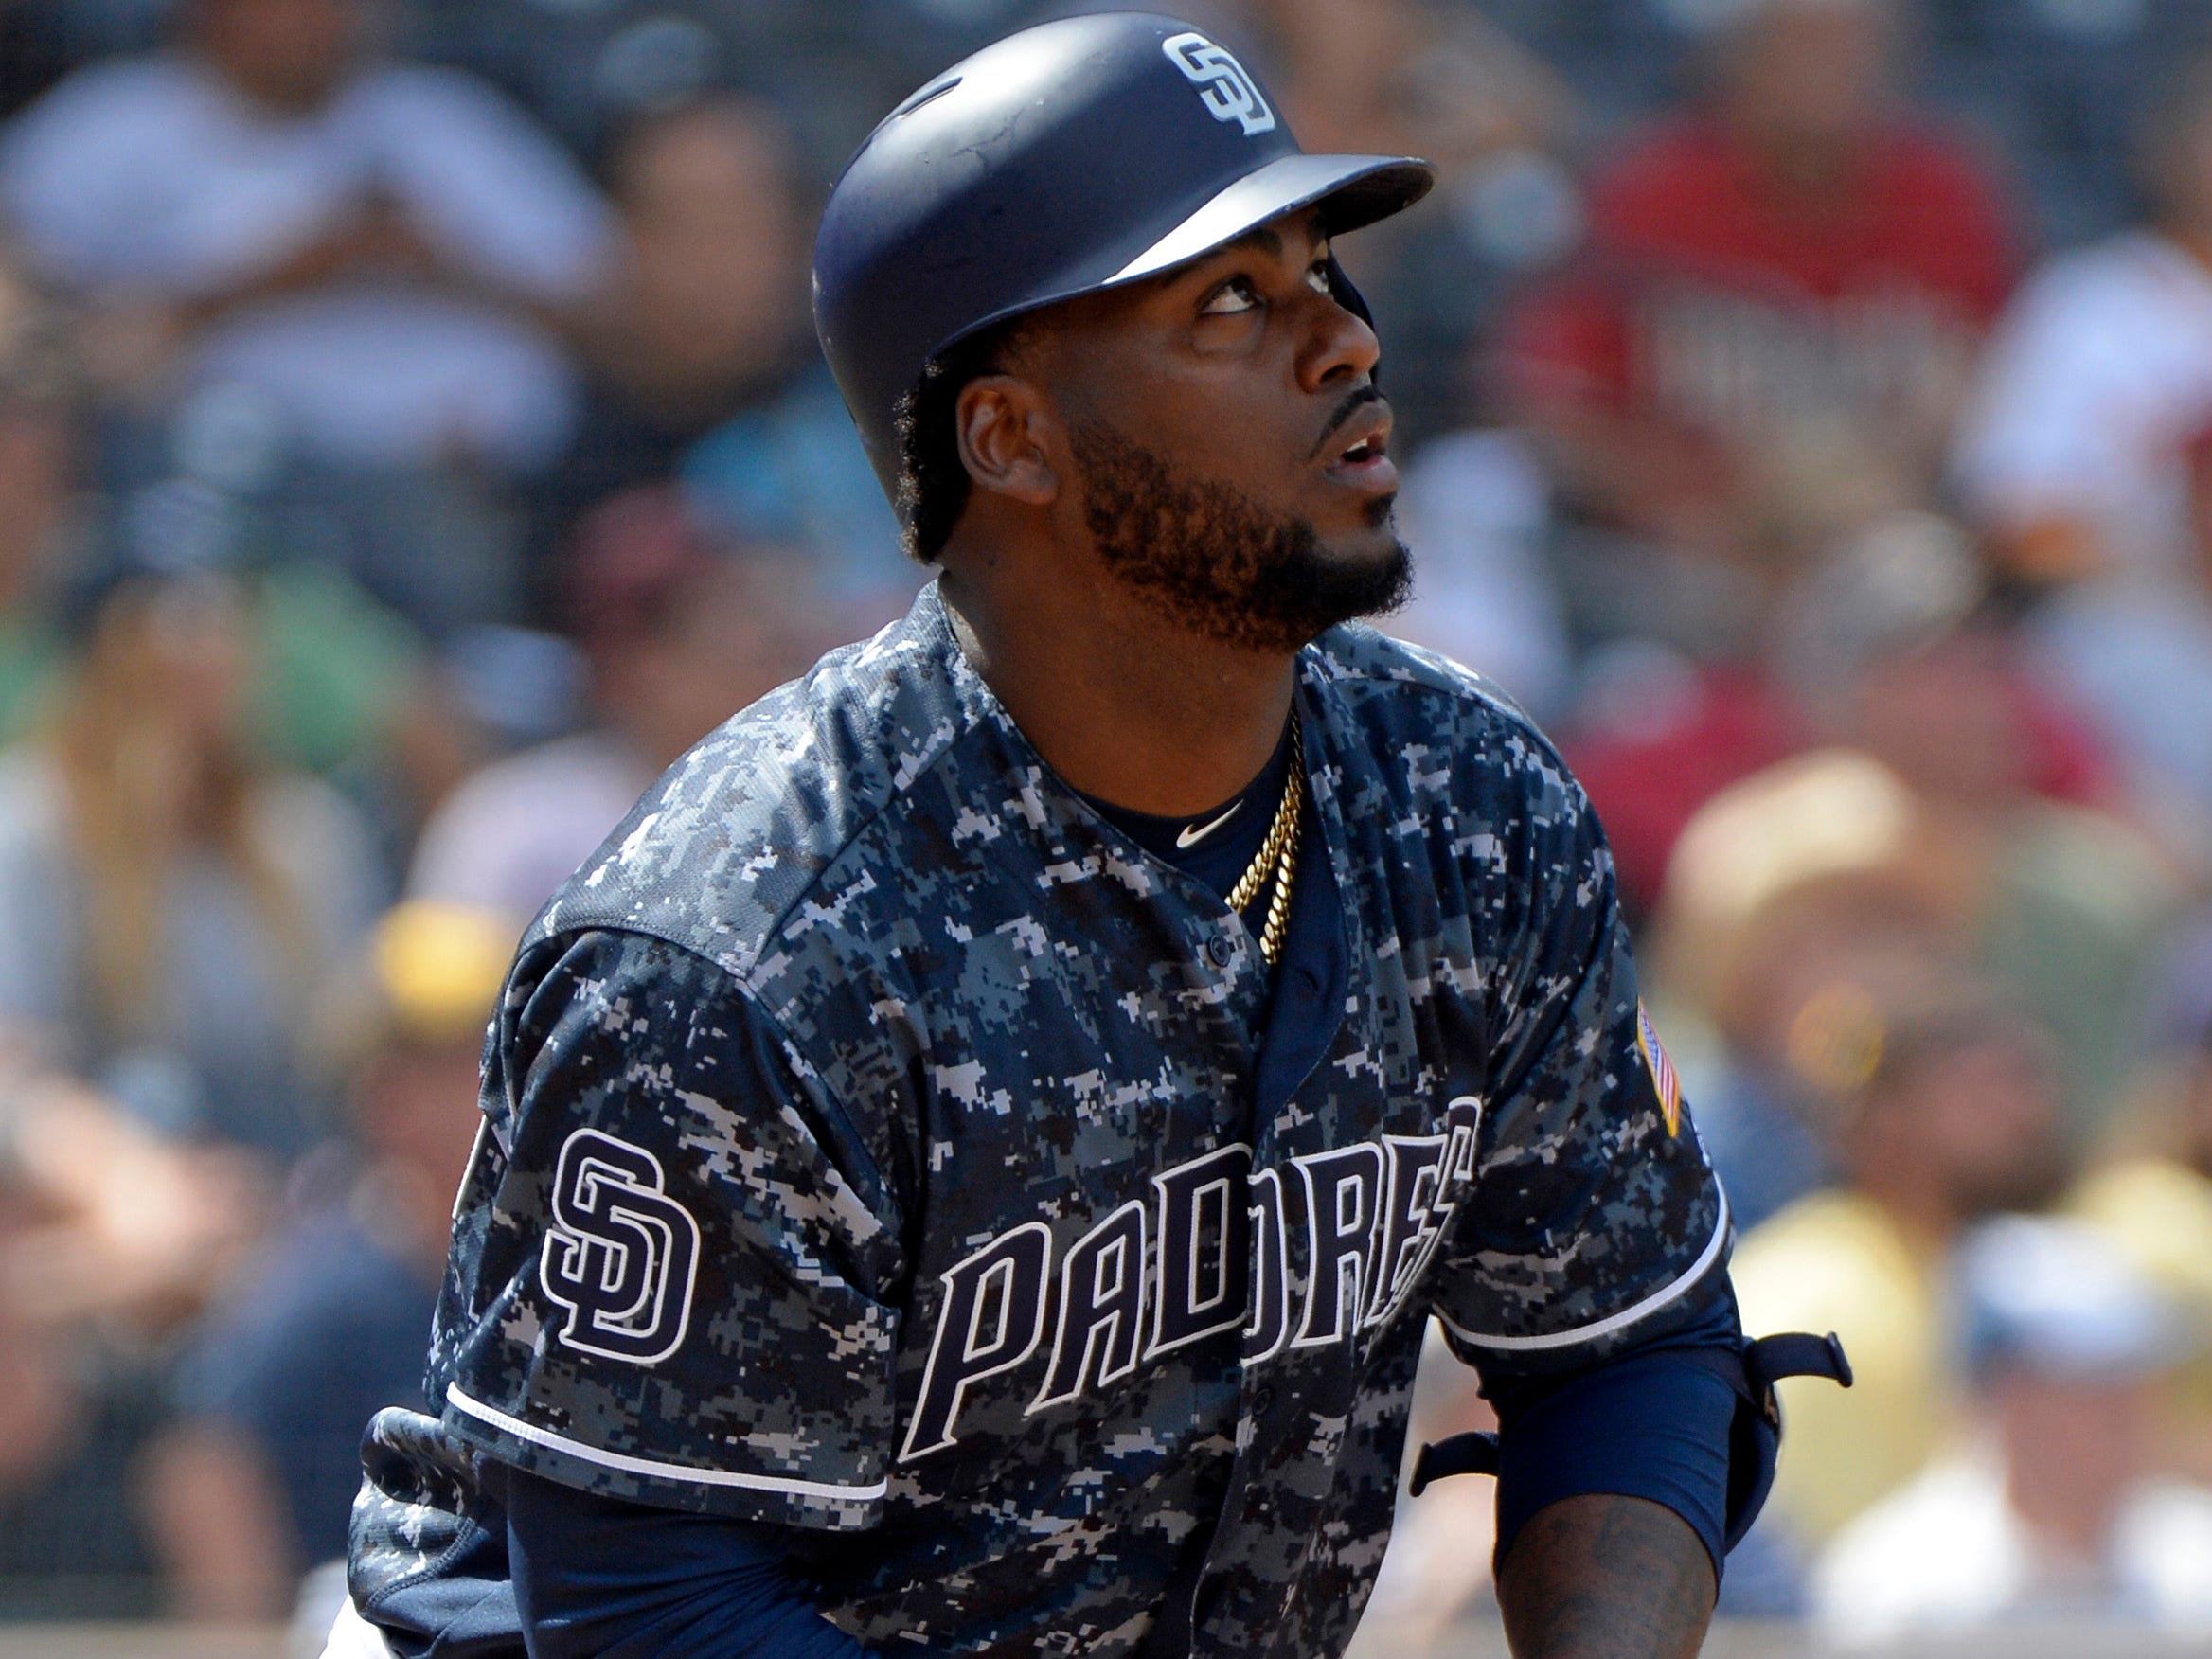 Sep 30, 2018; San Diego, CA, USA; San Diego Padres right fielder Franmil Reyes (32) watches his RBI double in the fifth inning against the Arizona Diamondbacks at Petco Park. Mandatory Credit: Jake Roth-USA TODAY Sports